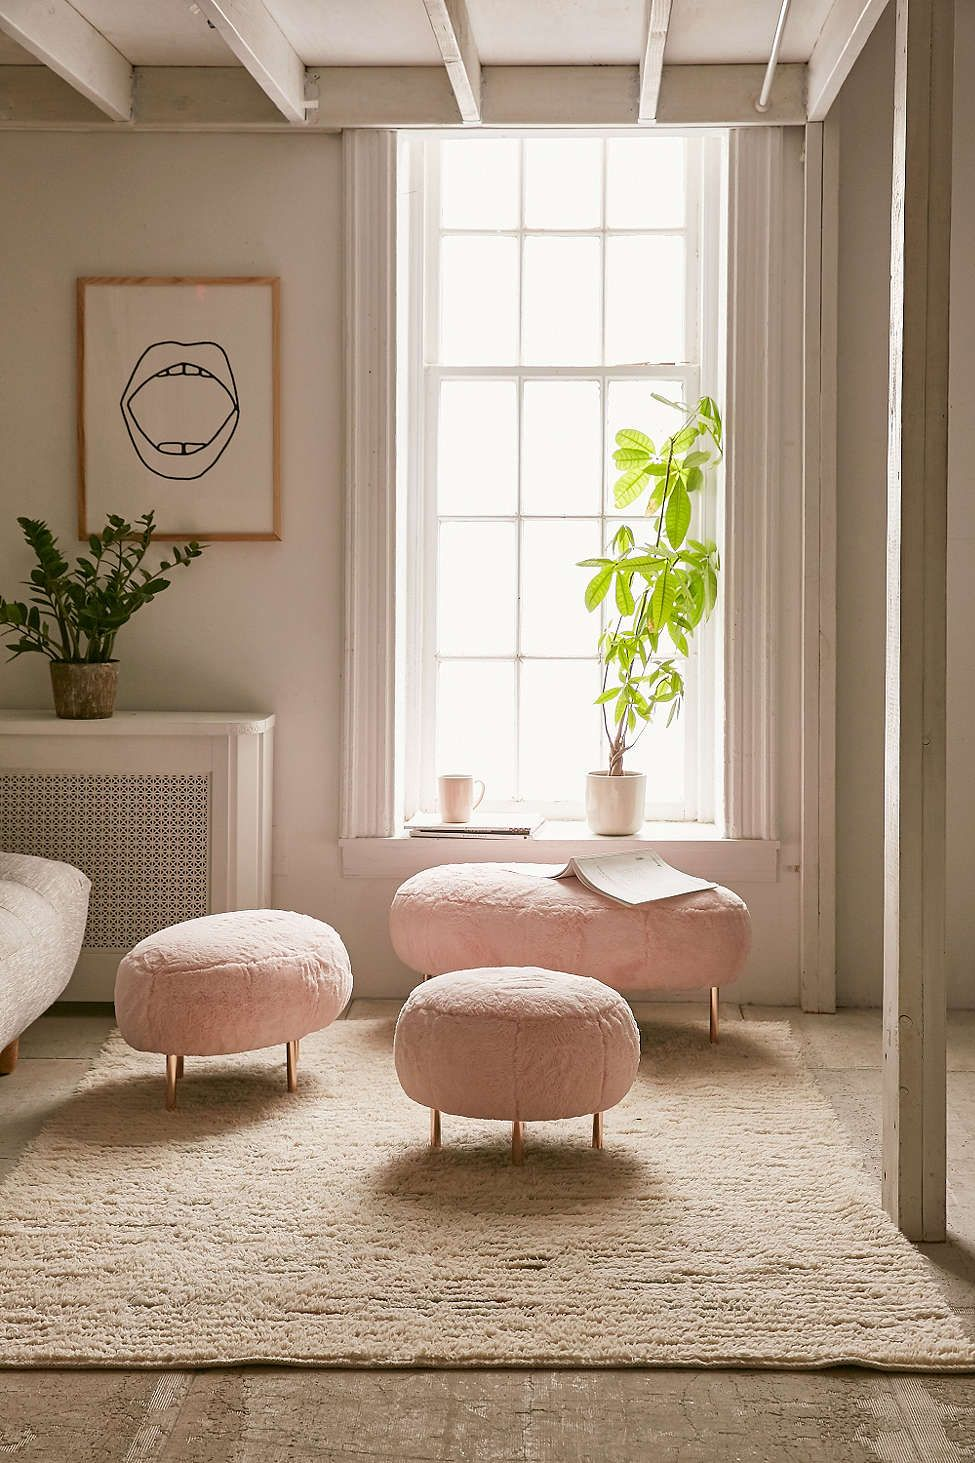 Ofelia Furry Stool   Urban Outfitters. Romantic BedroomsLiving Room ...